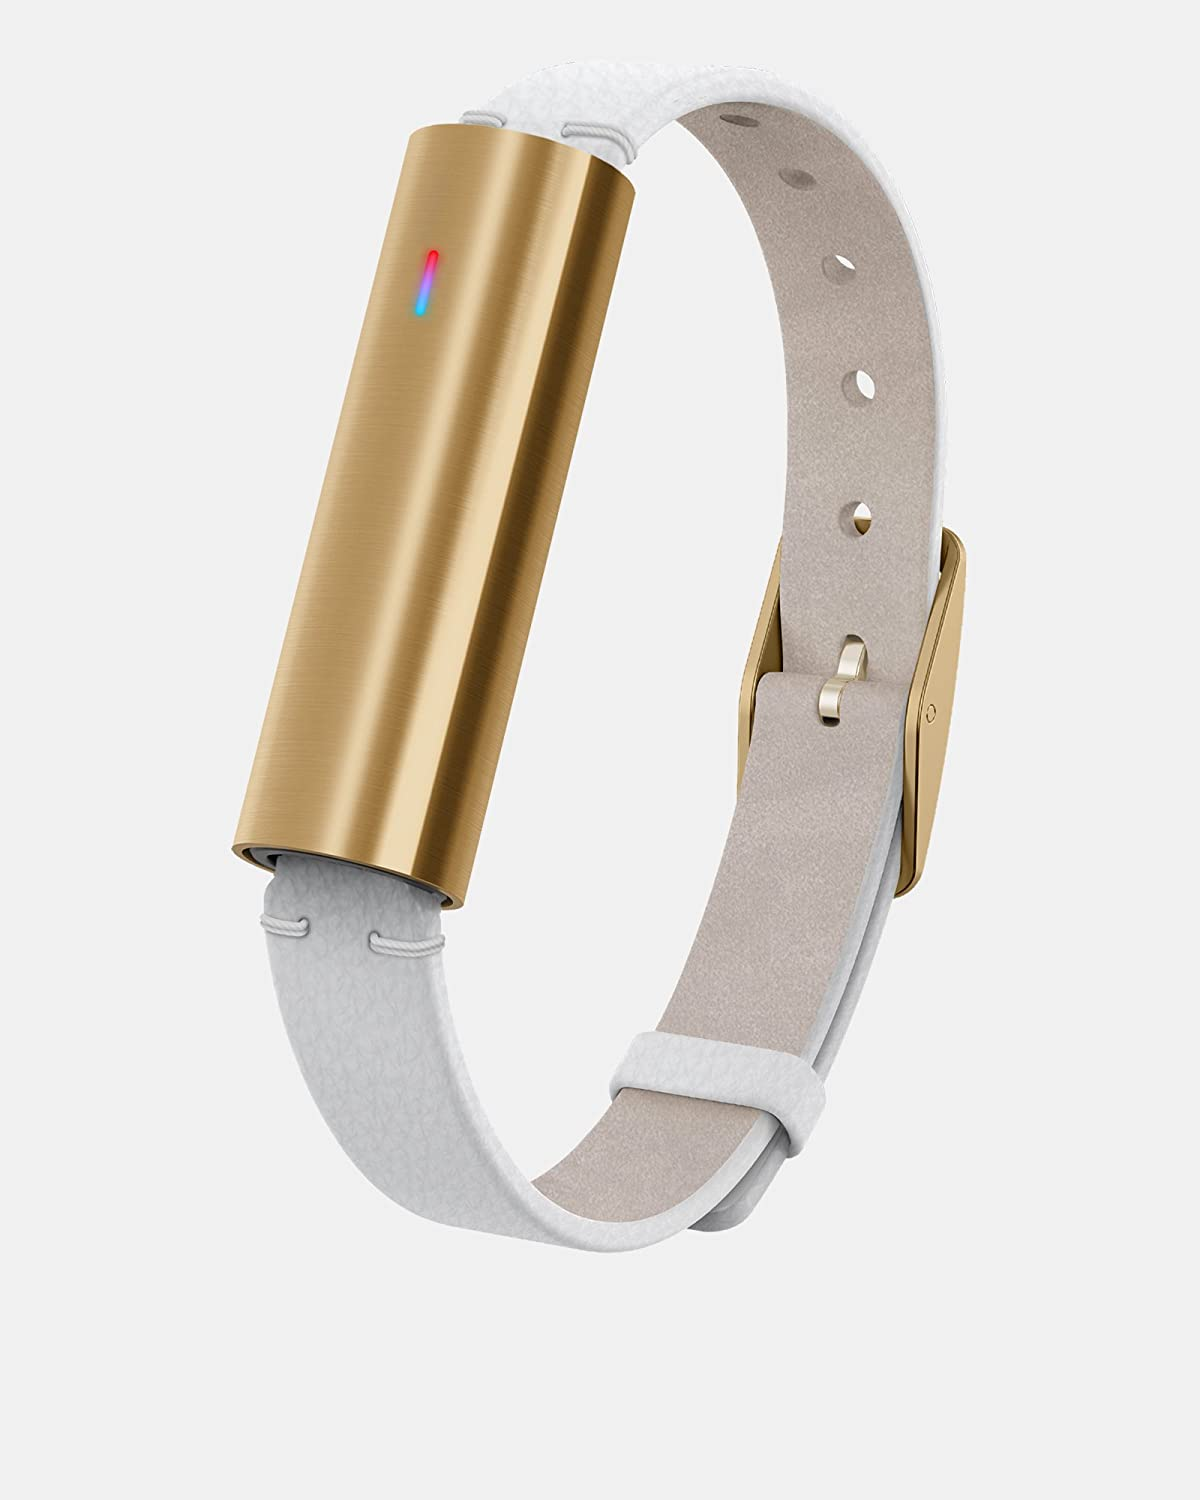 Misfit Ray fitness band